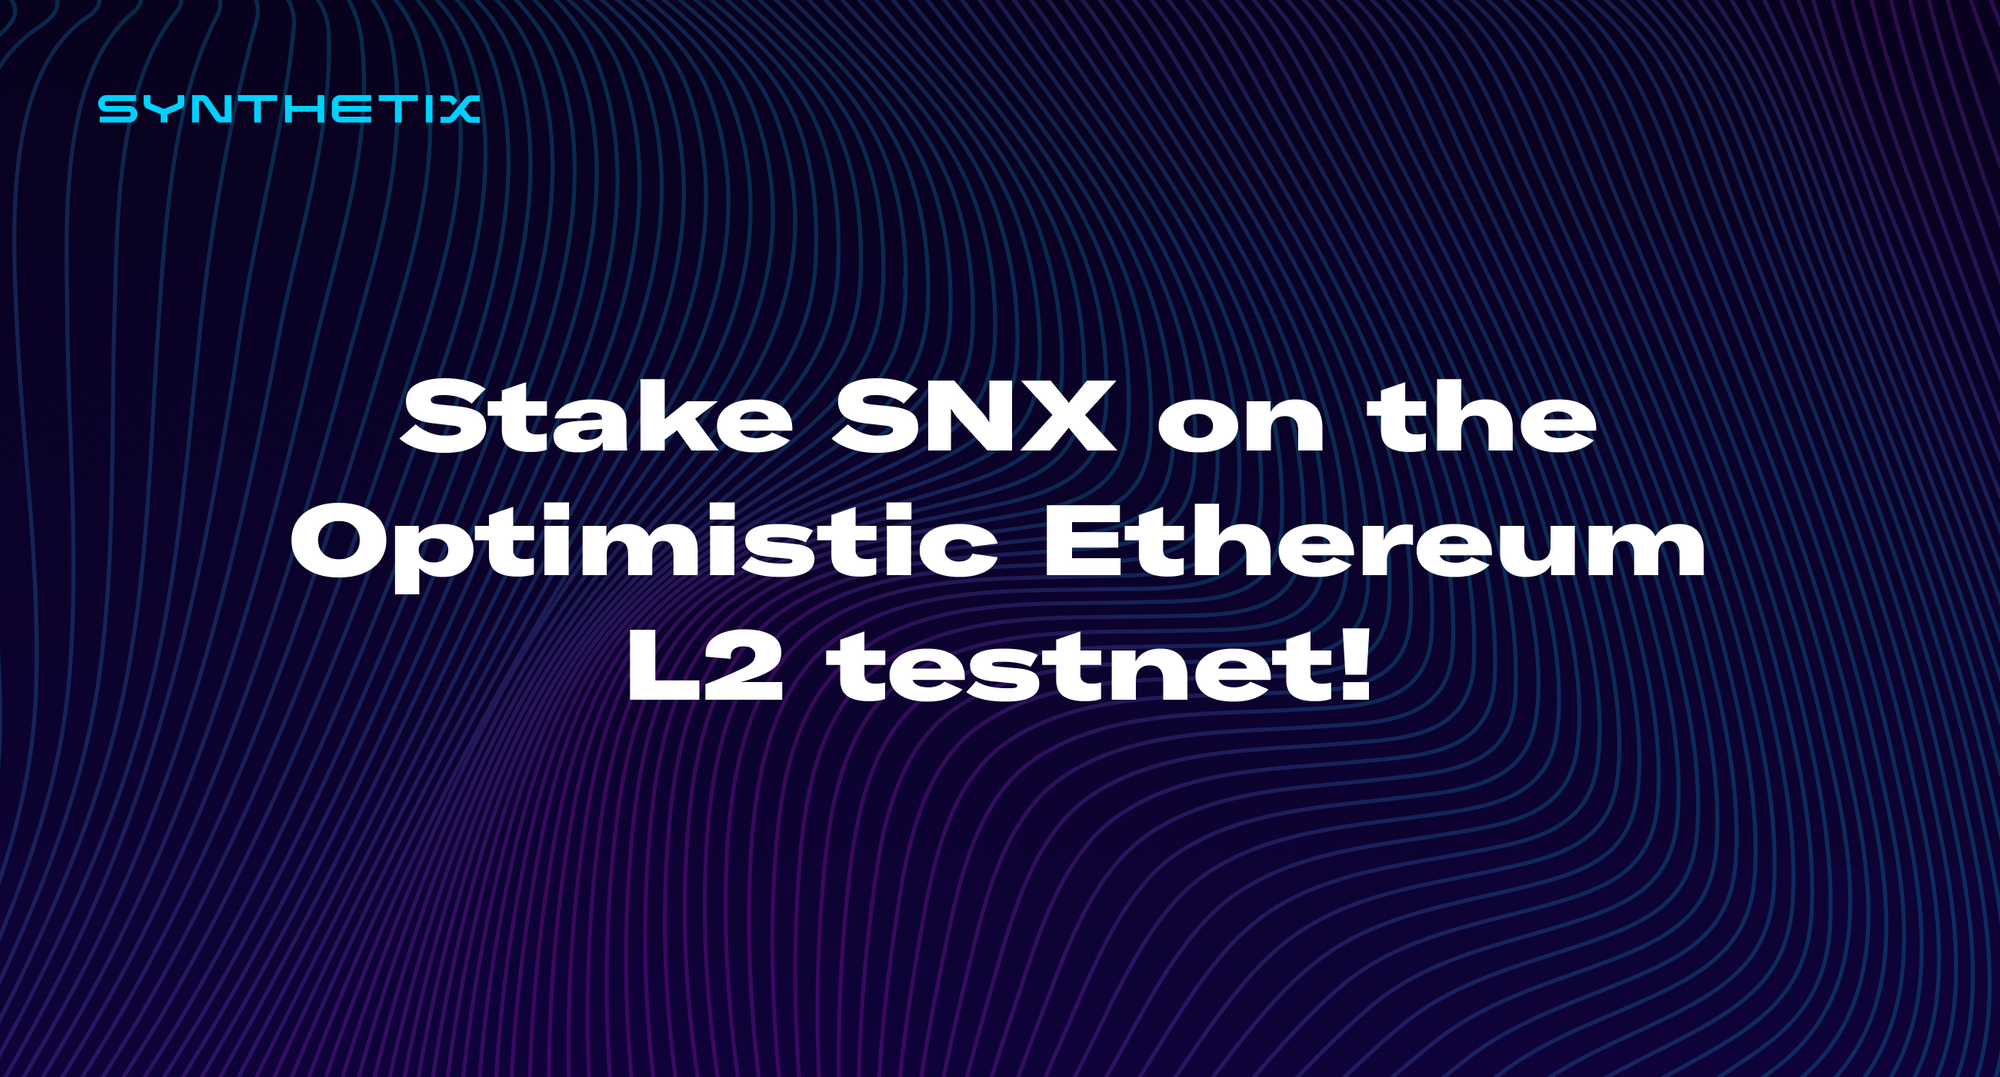 Stake SNX on the Optimistic Ethereum L2 testnet!